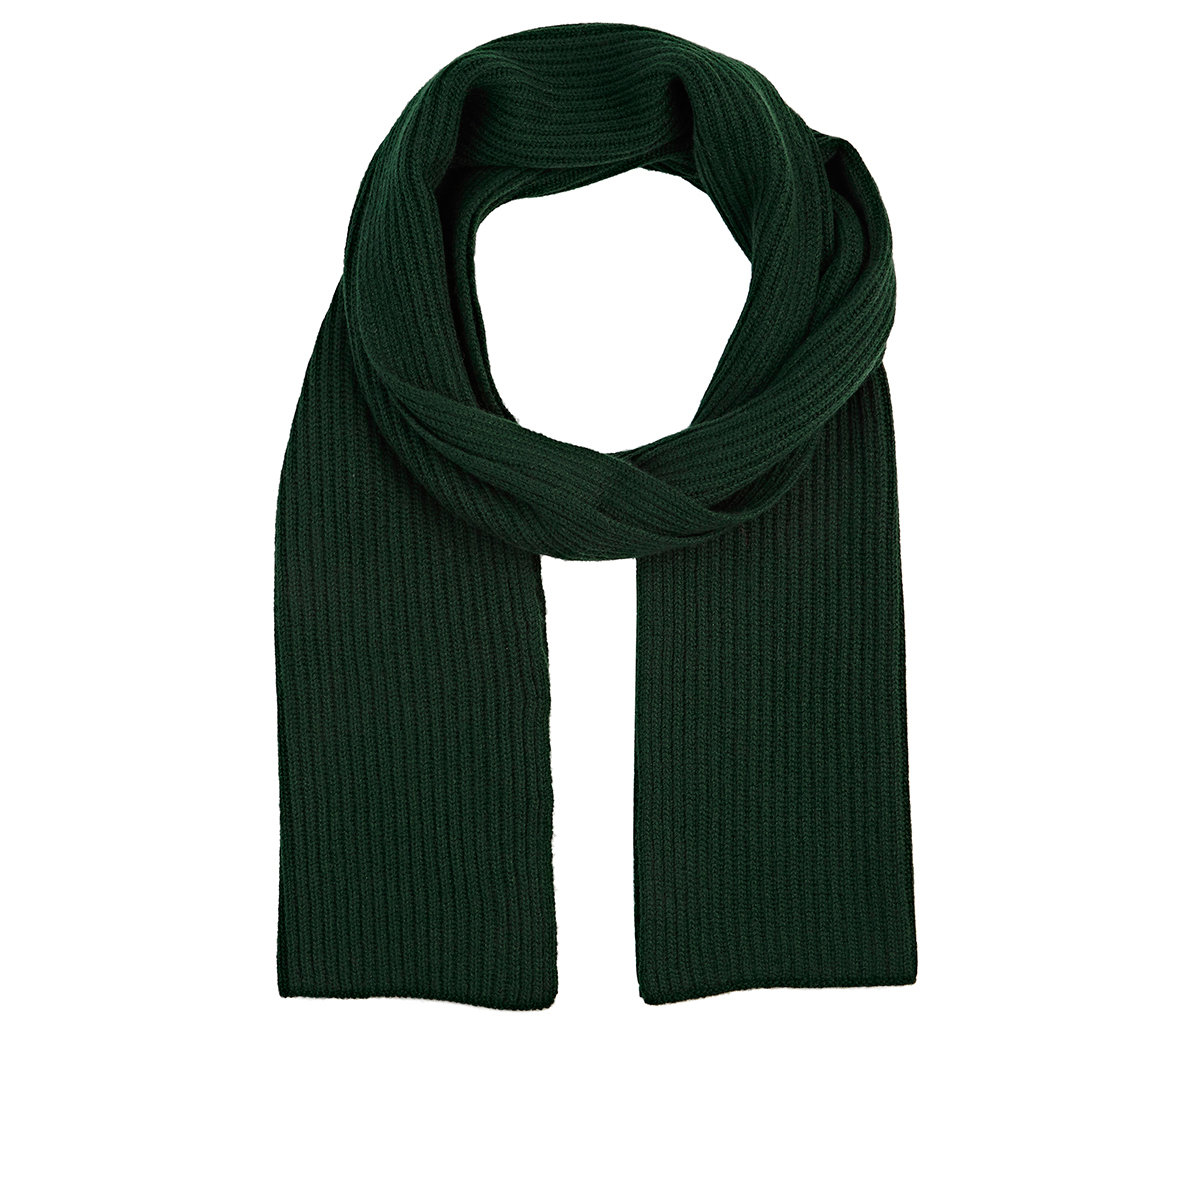 Knitting Warehouse Shipping : Barneys new york men s cashmere english rib knit scarf in